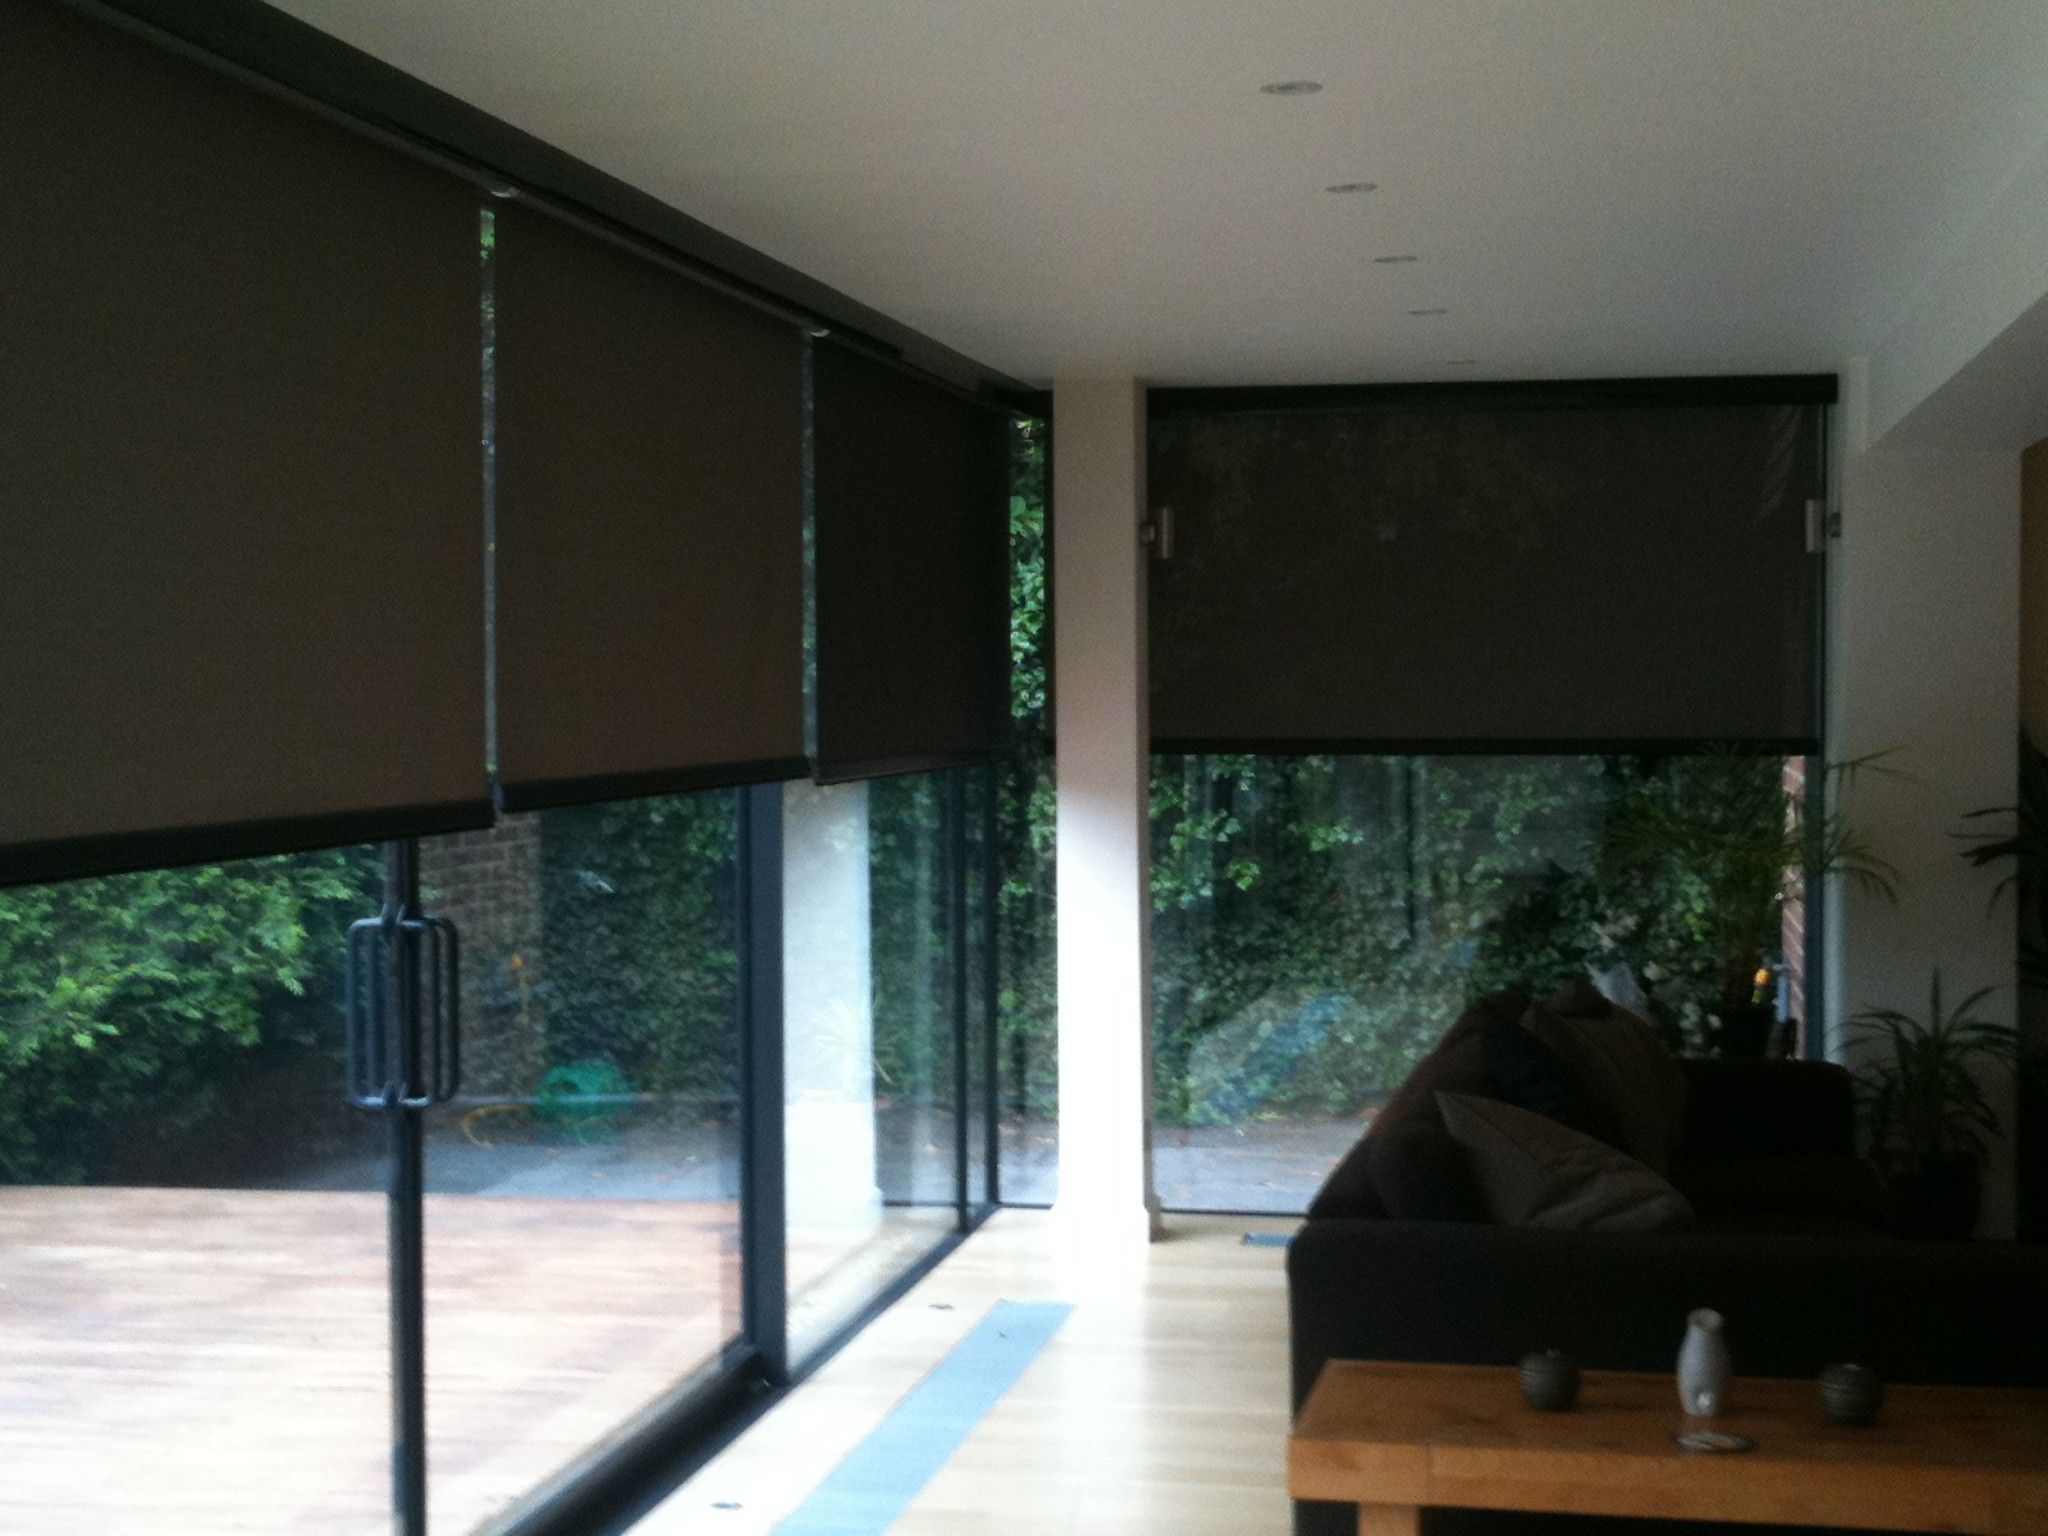 Exterior Interior Glass Patio Doors With Black Frame Tone